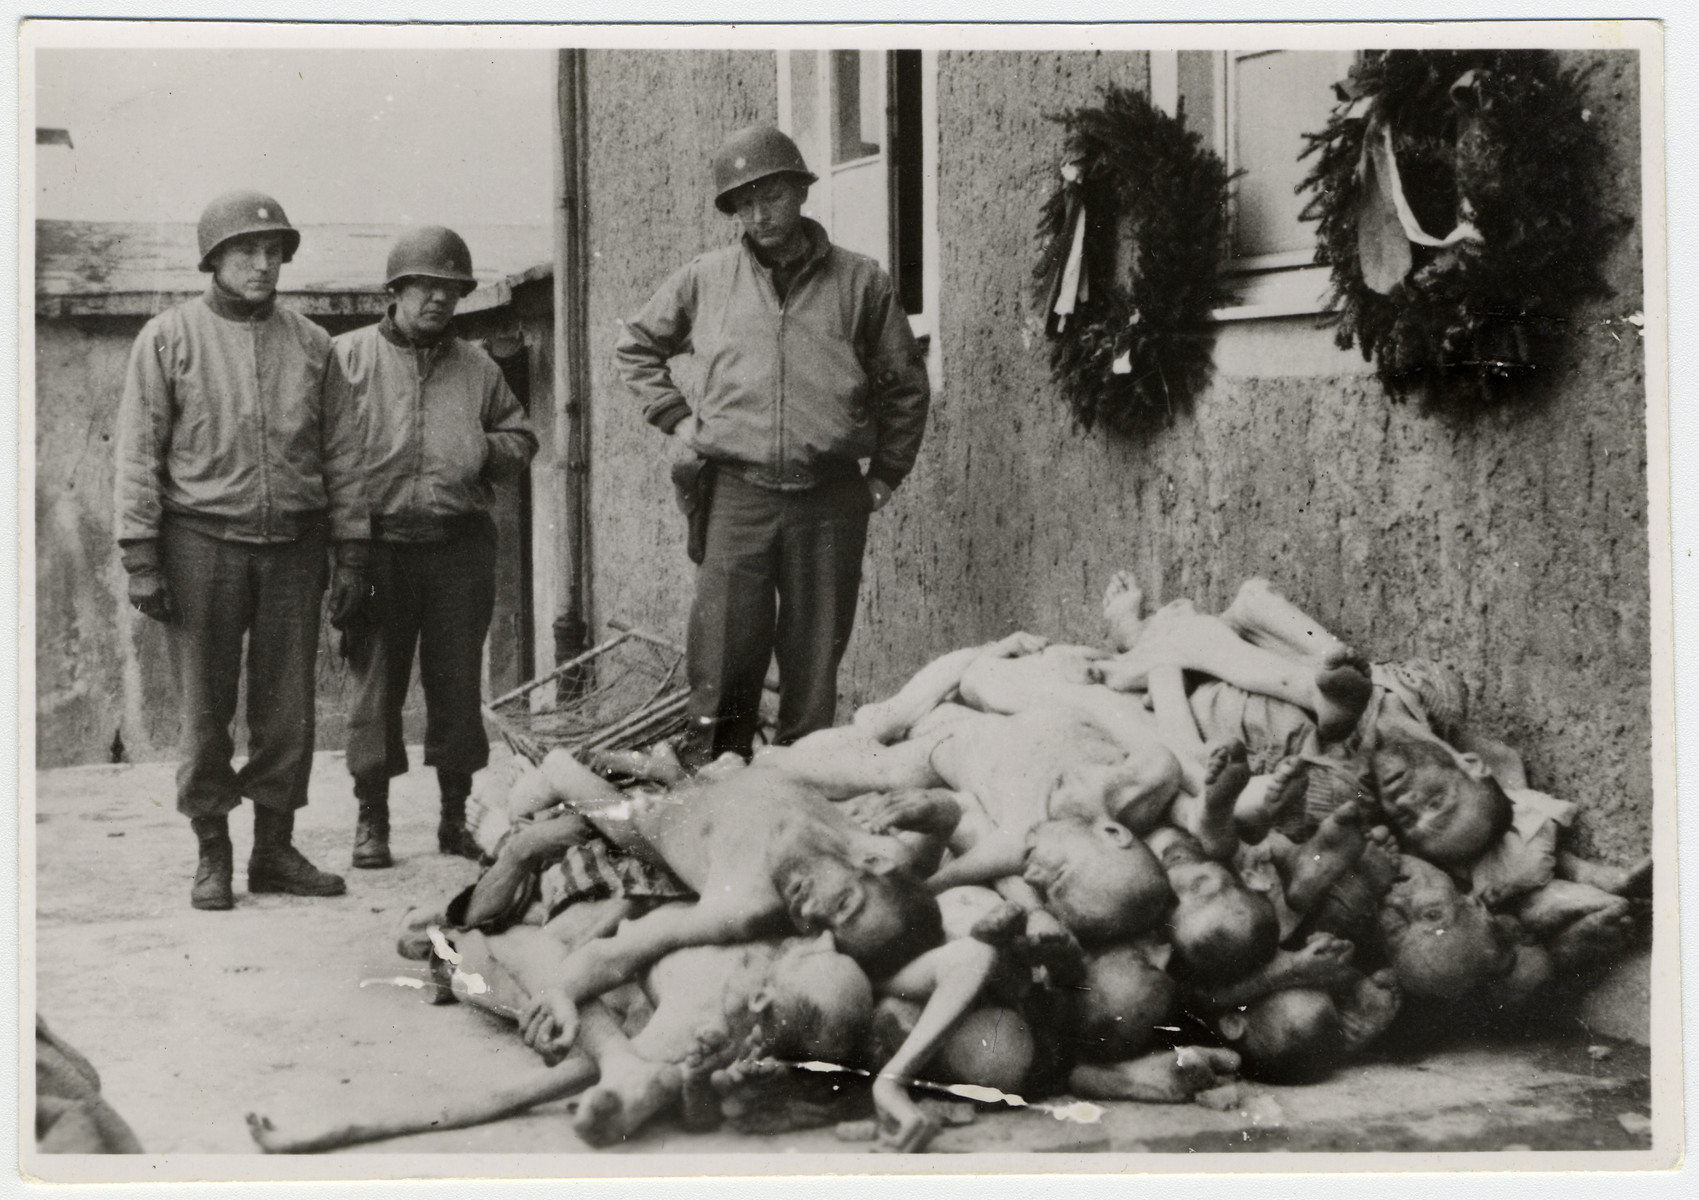 American soldiers view the bodies of emaciated Buchenwald prisoners stacked up next to the crematoria.